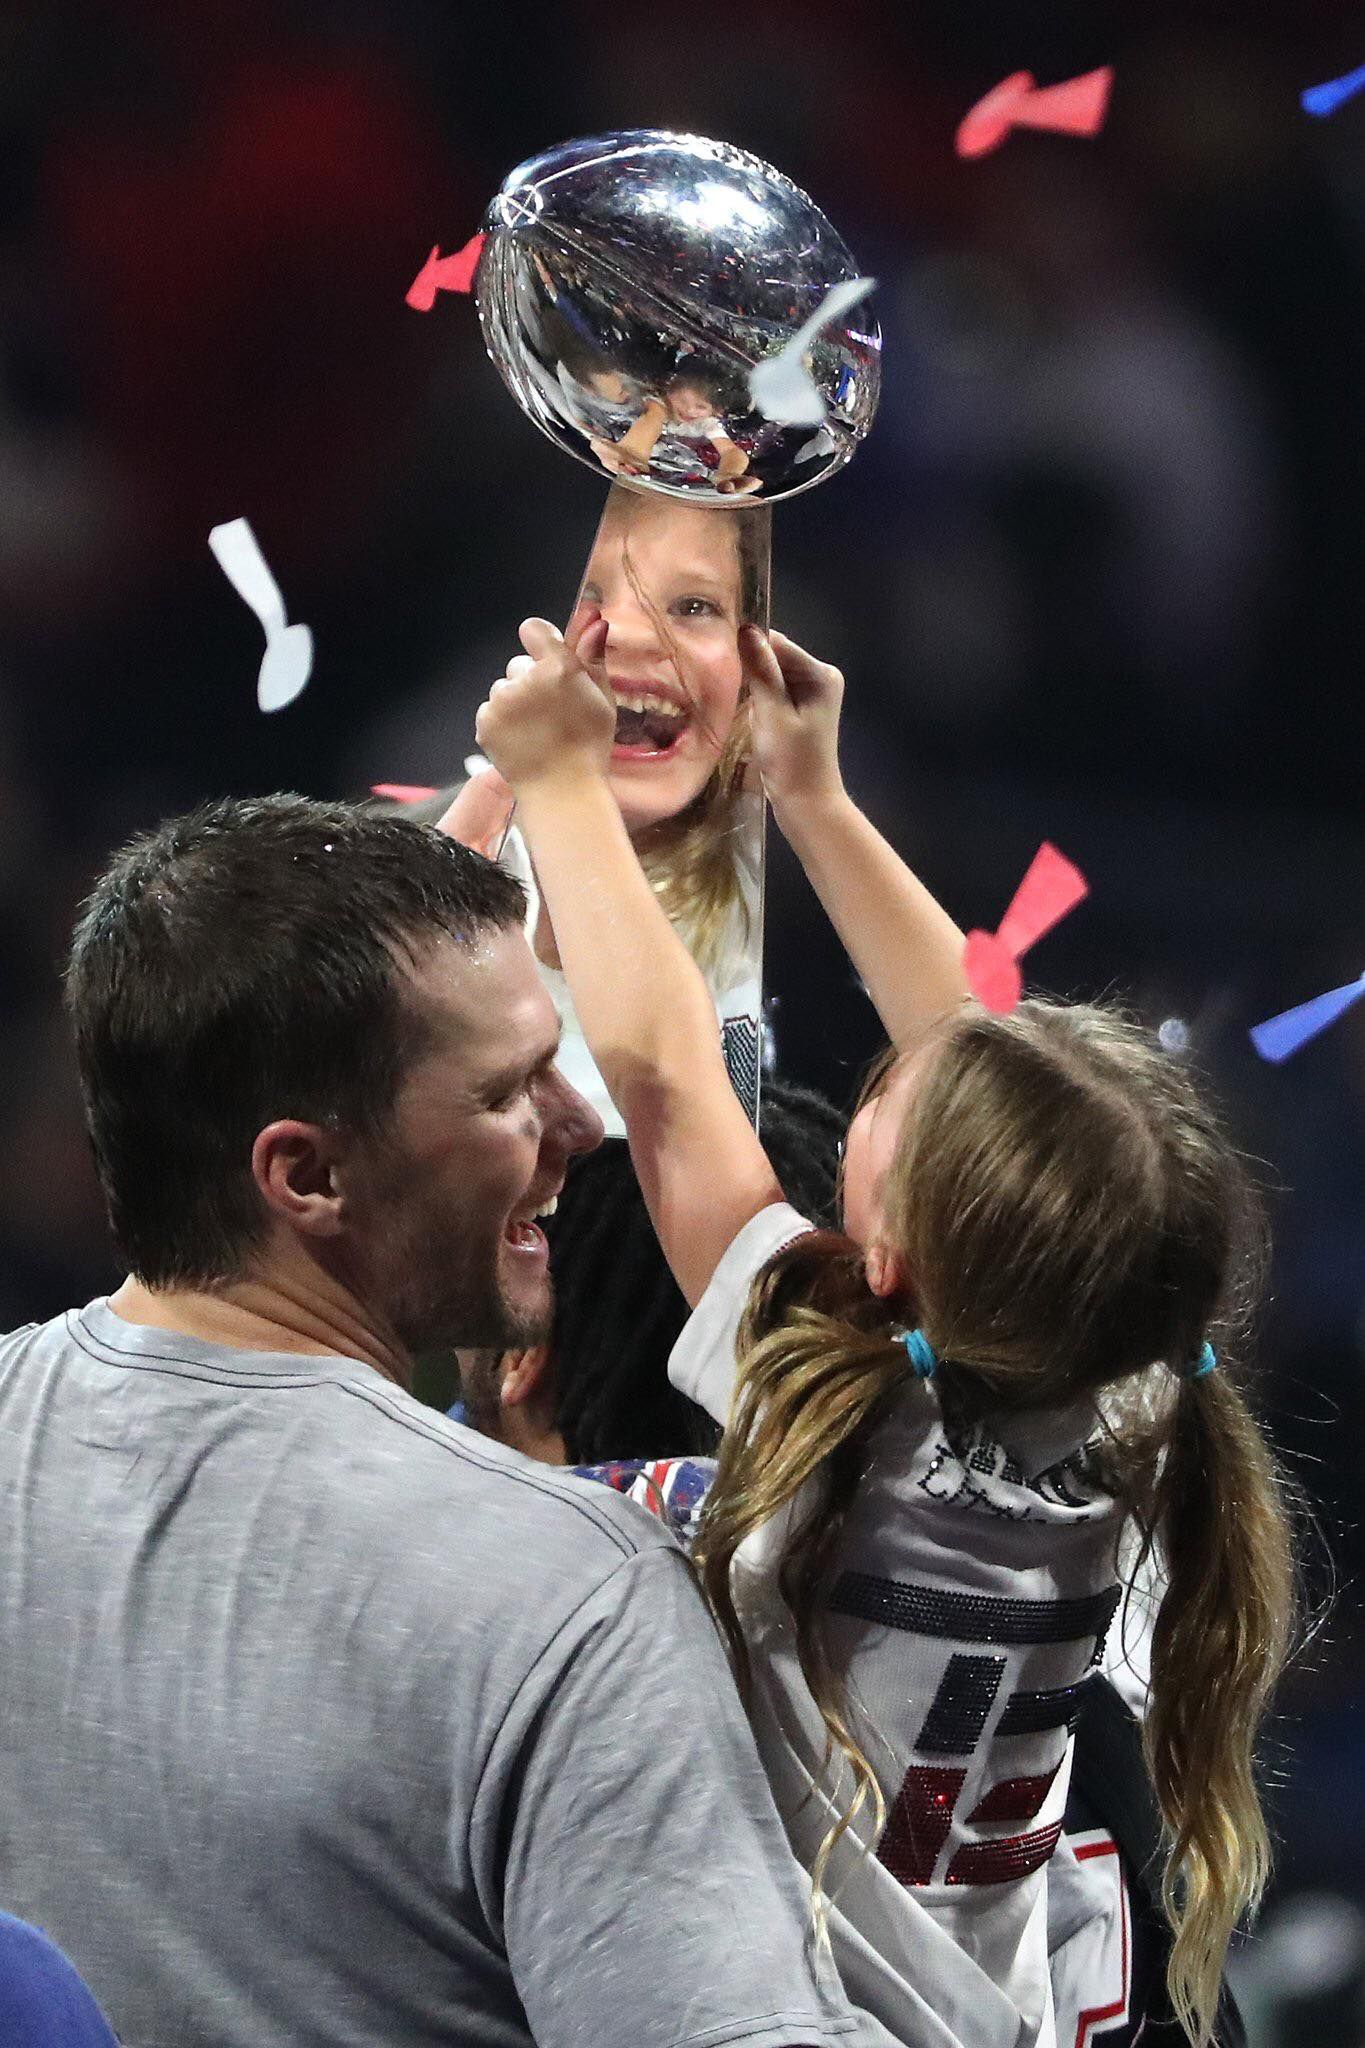 Tom Brady and his daughter after the Super Bowl